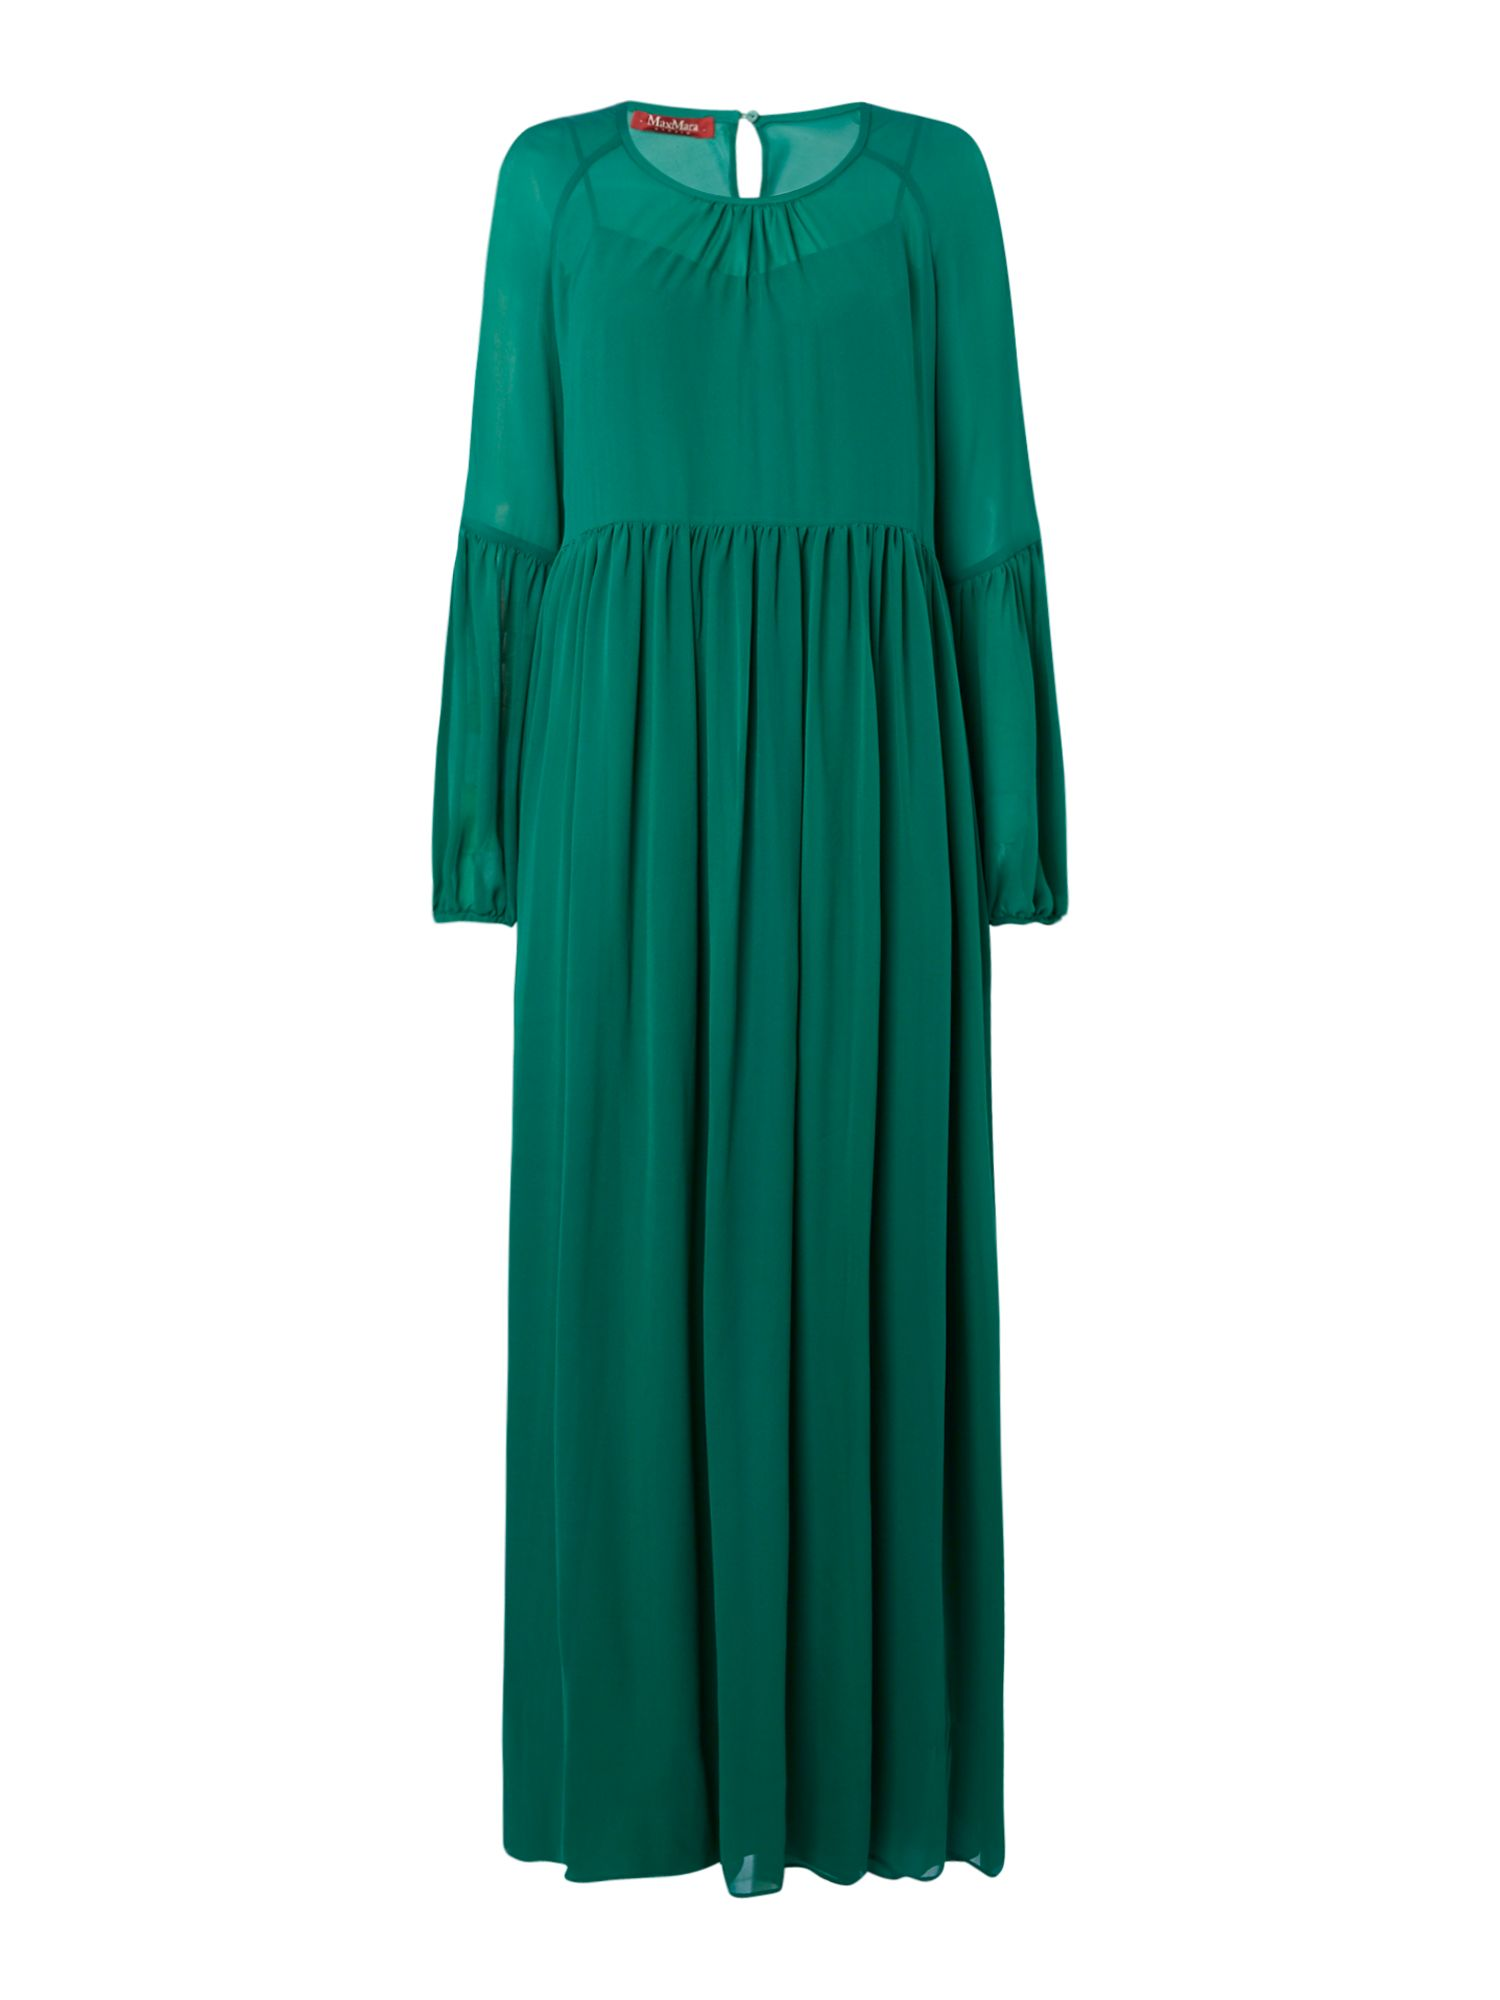 Max Mara Studio Novara lightweight maxi dress, Emerald